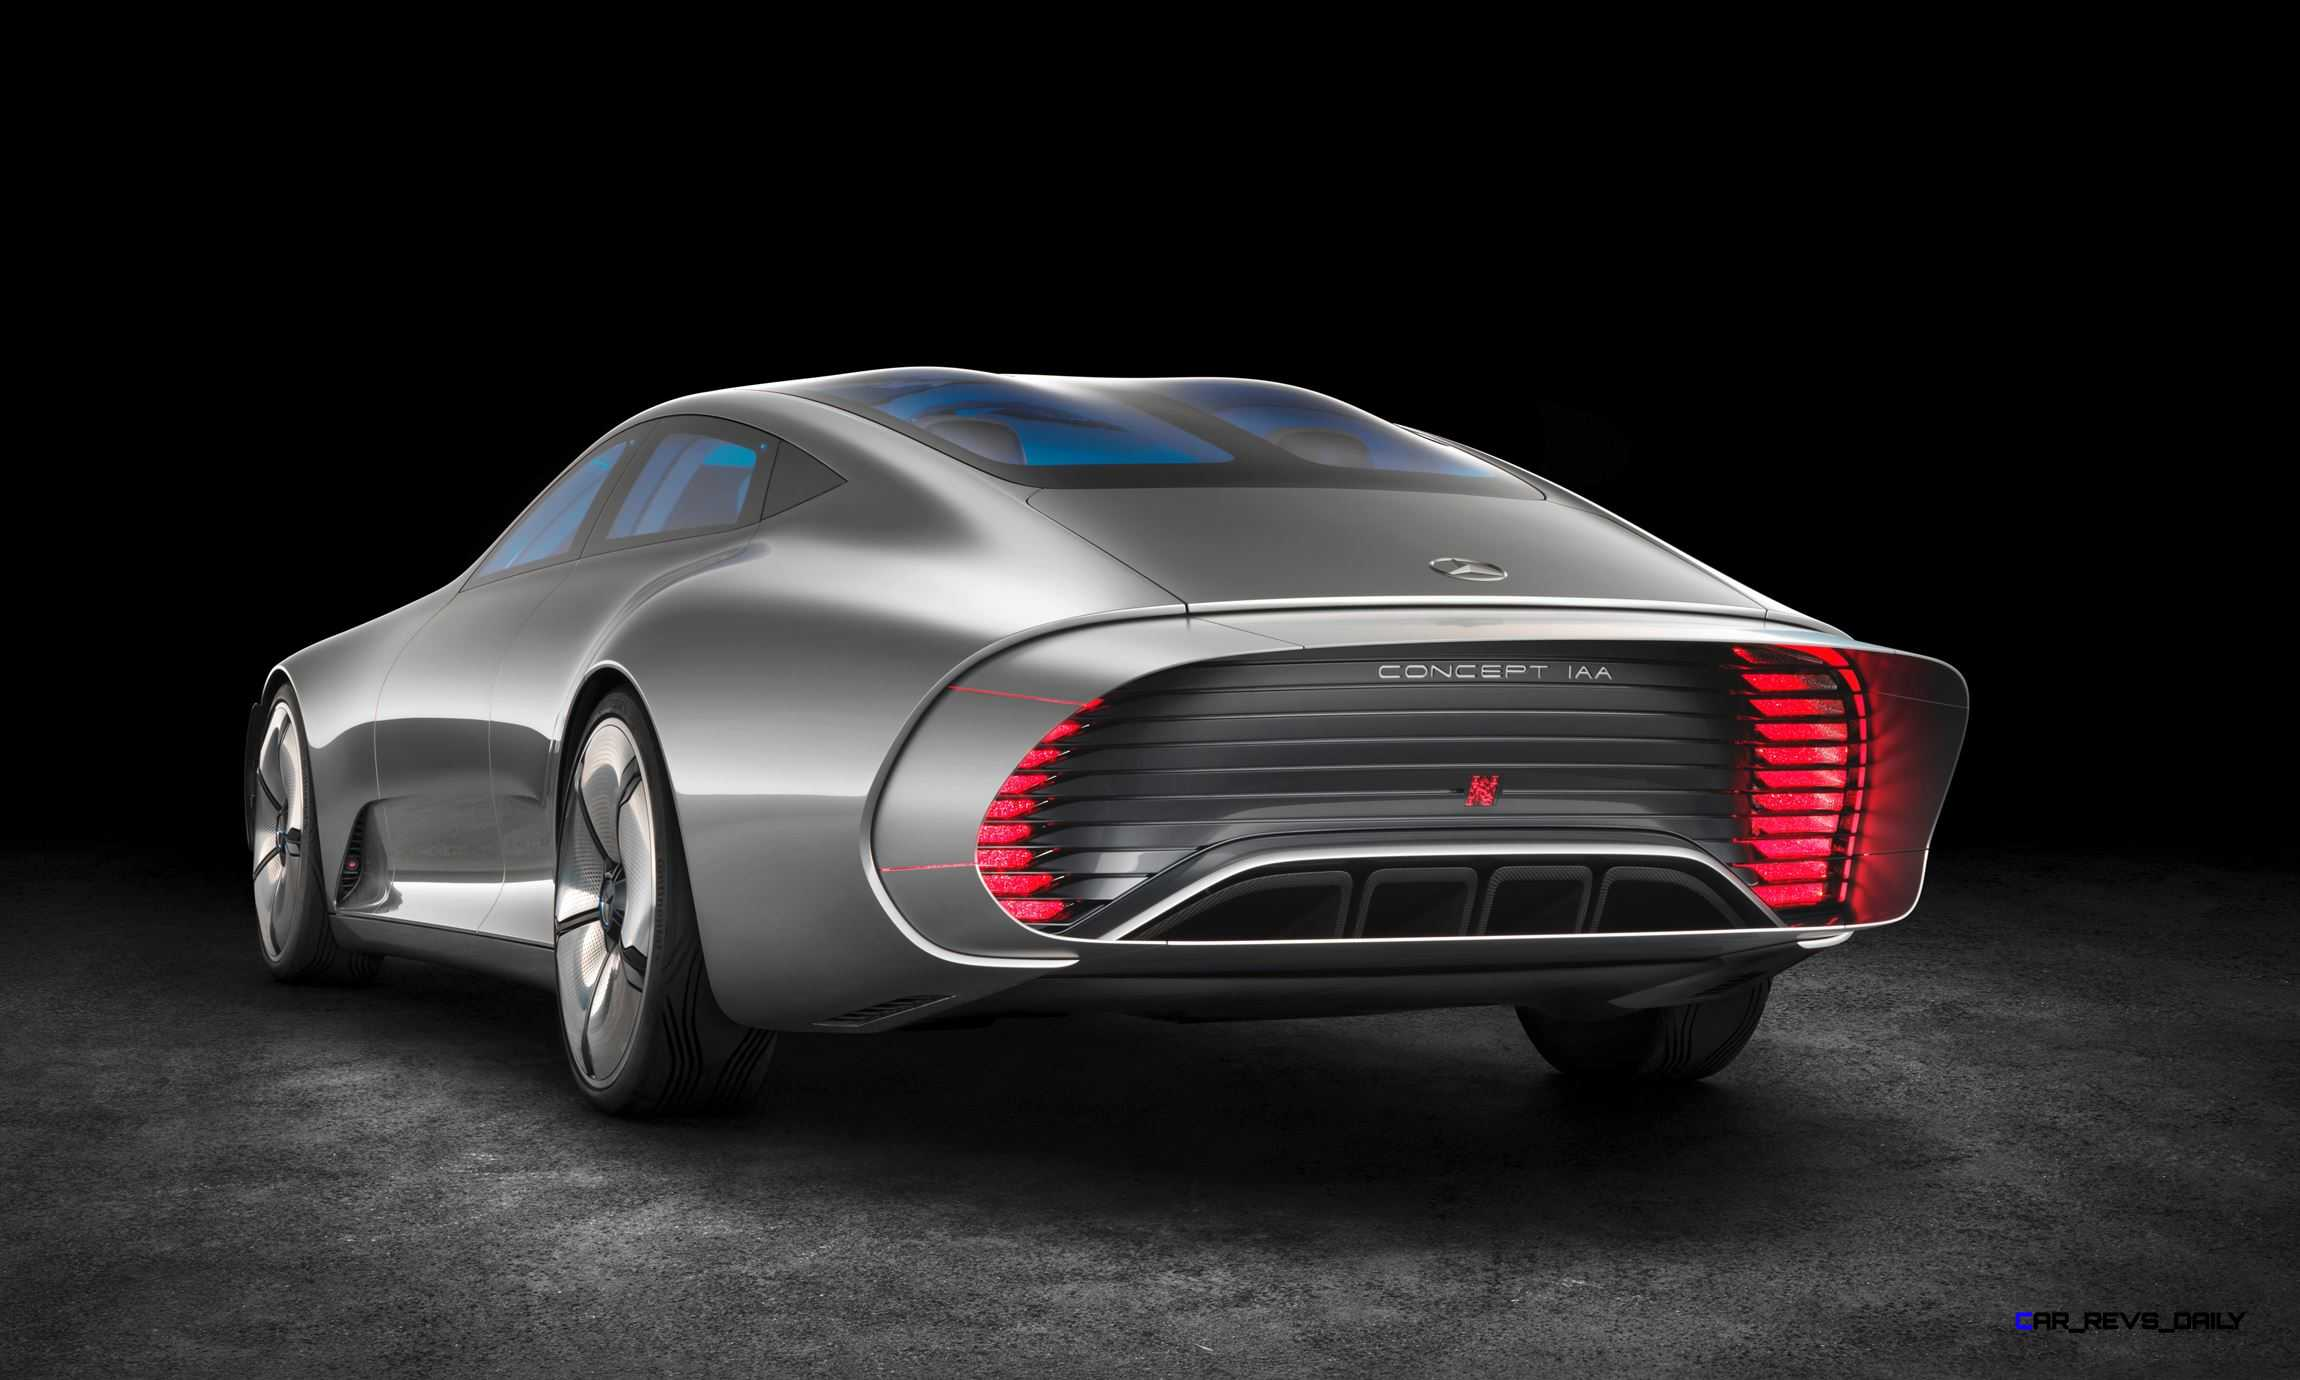 2015 mercedes benz concept iaa for Mercedes benz new cars 2015